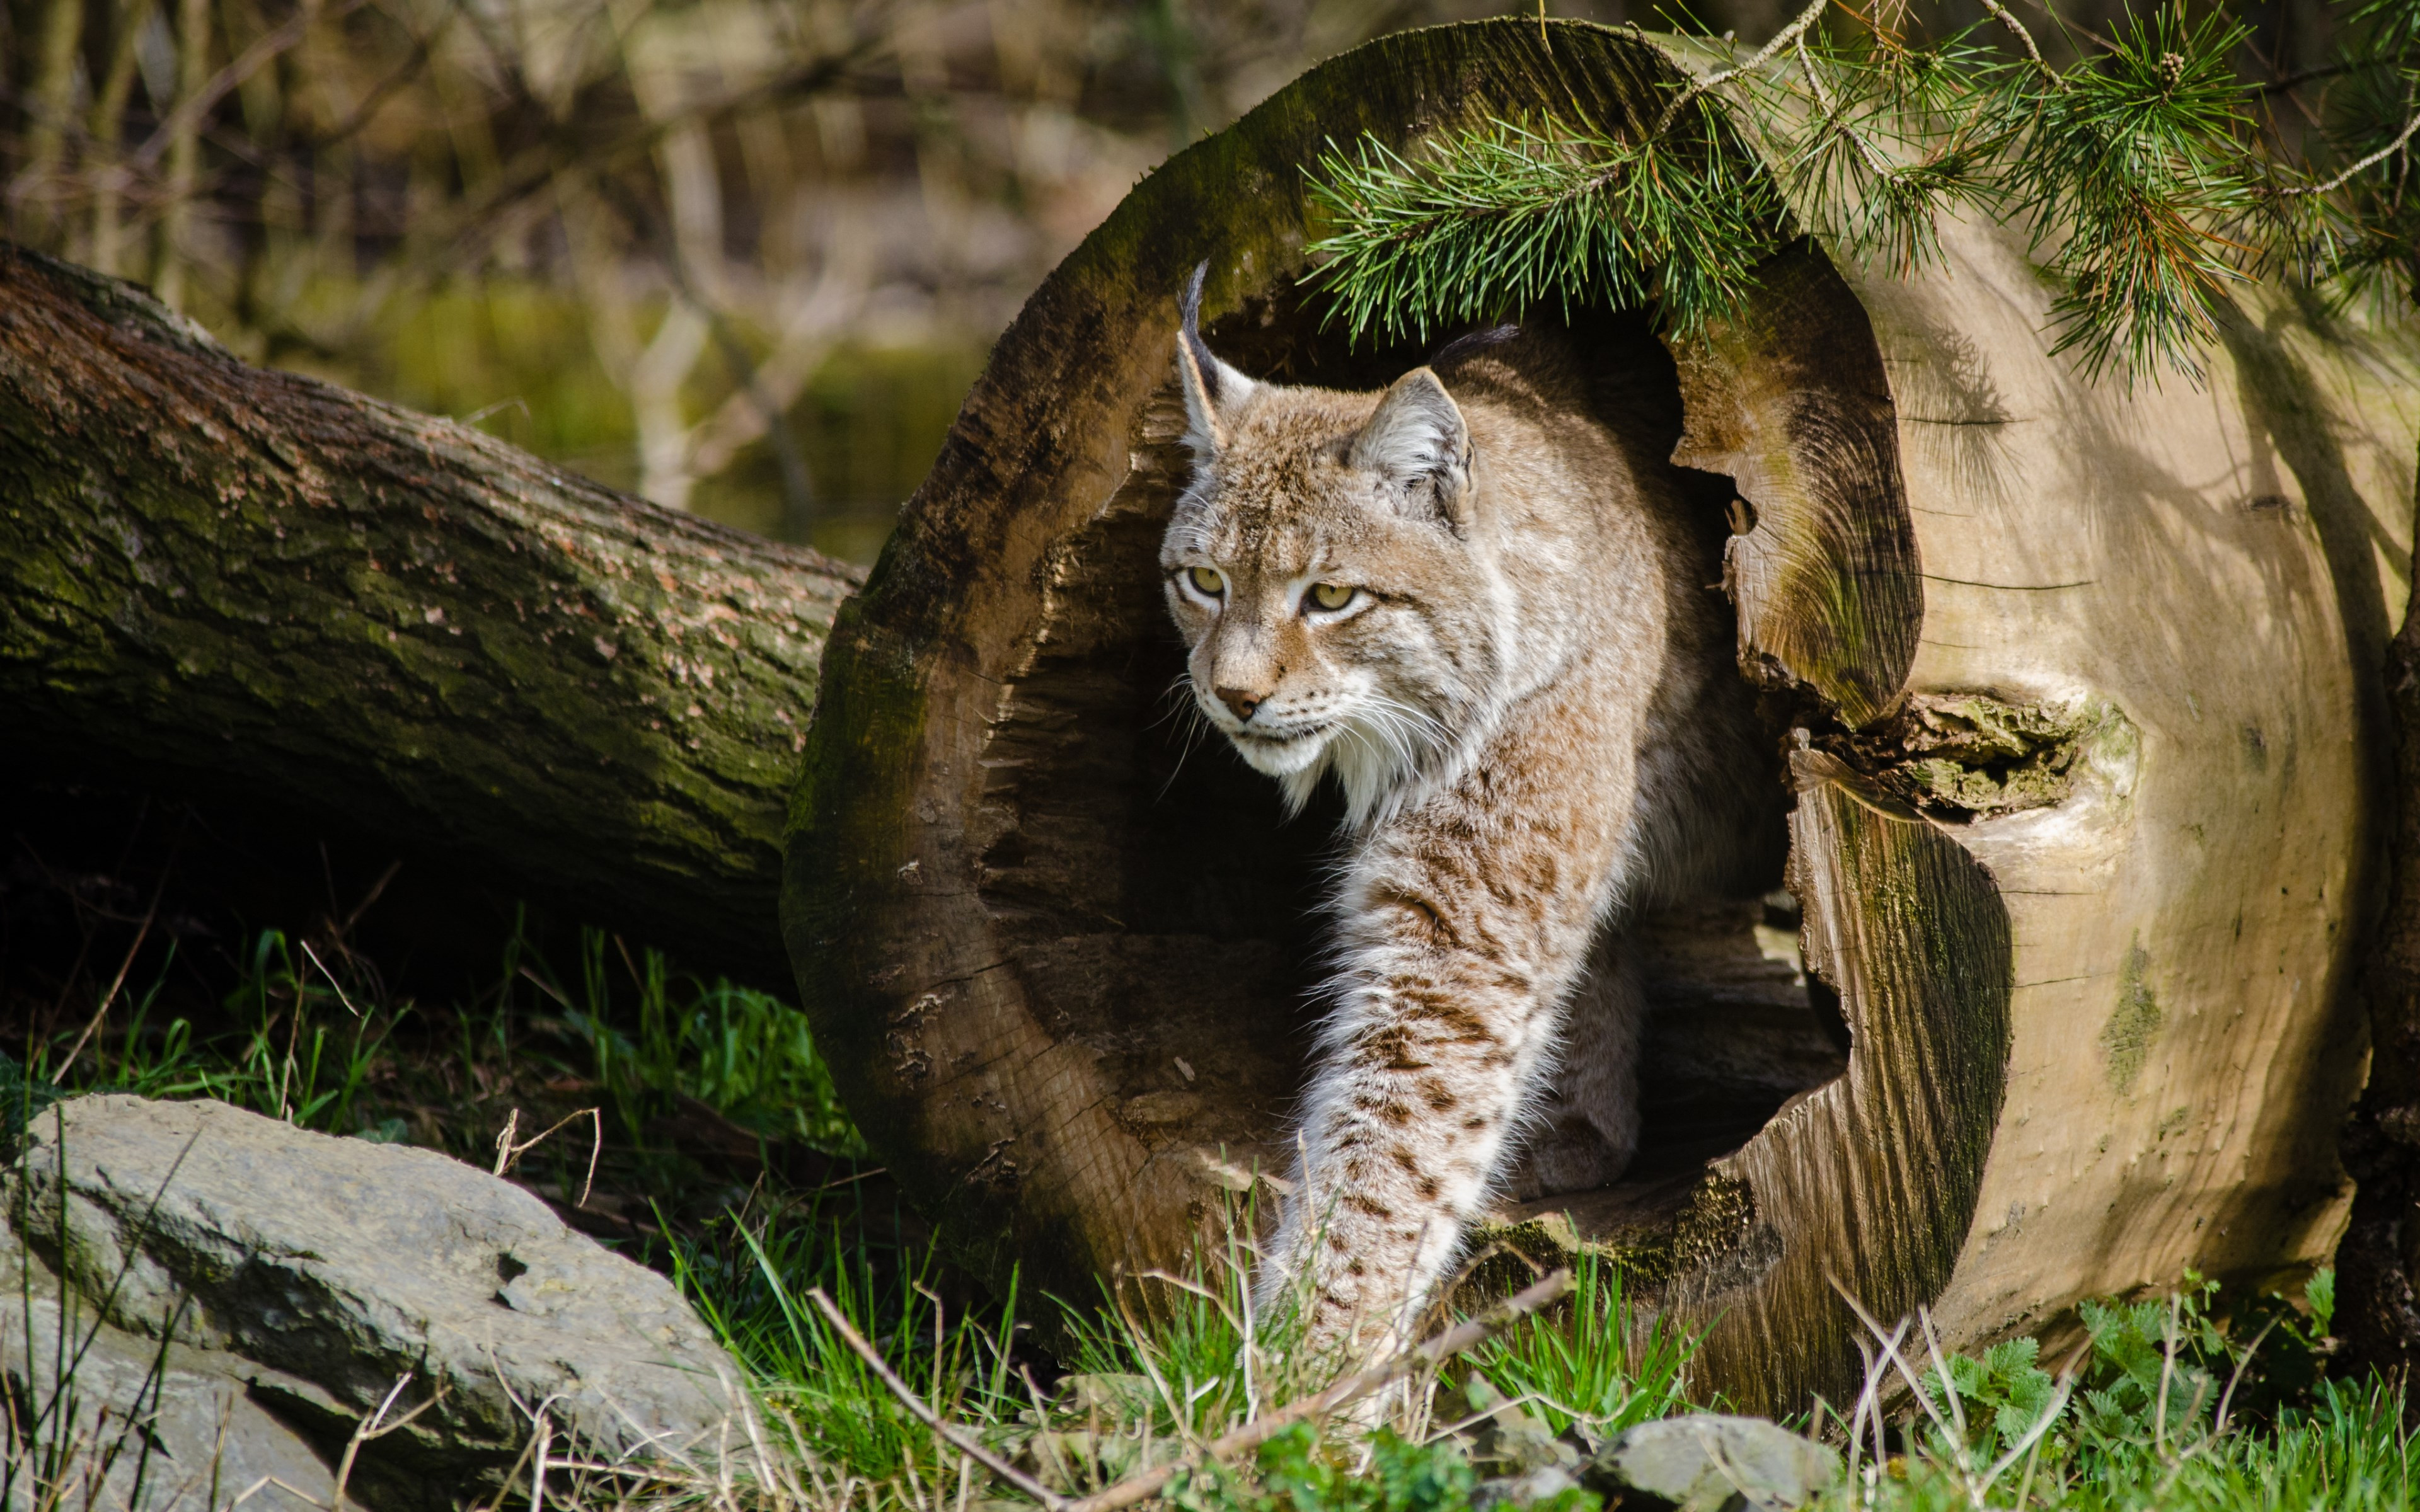 Lynx at the Zoo wallpaper 3840x2400